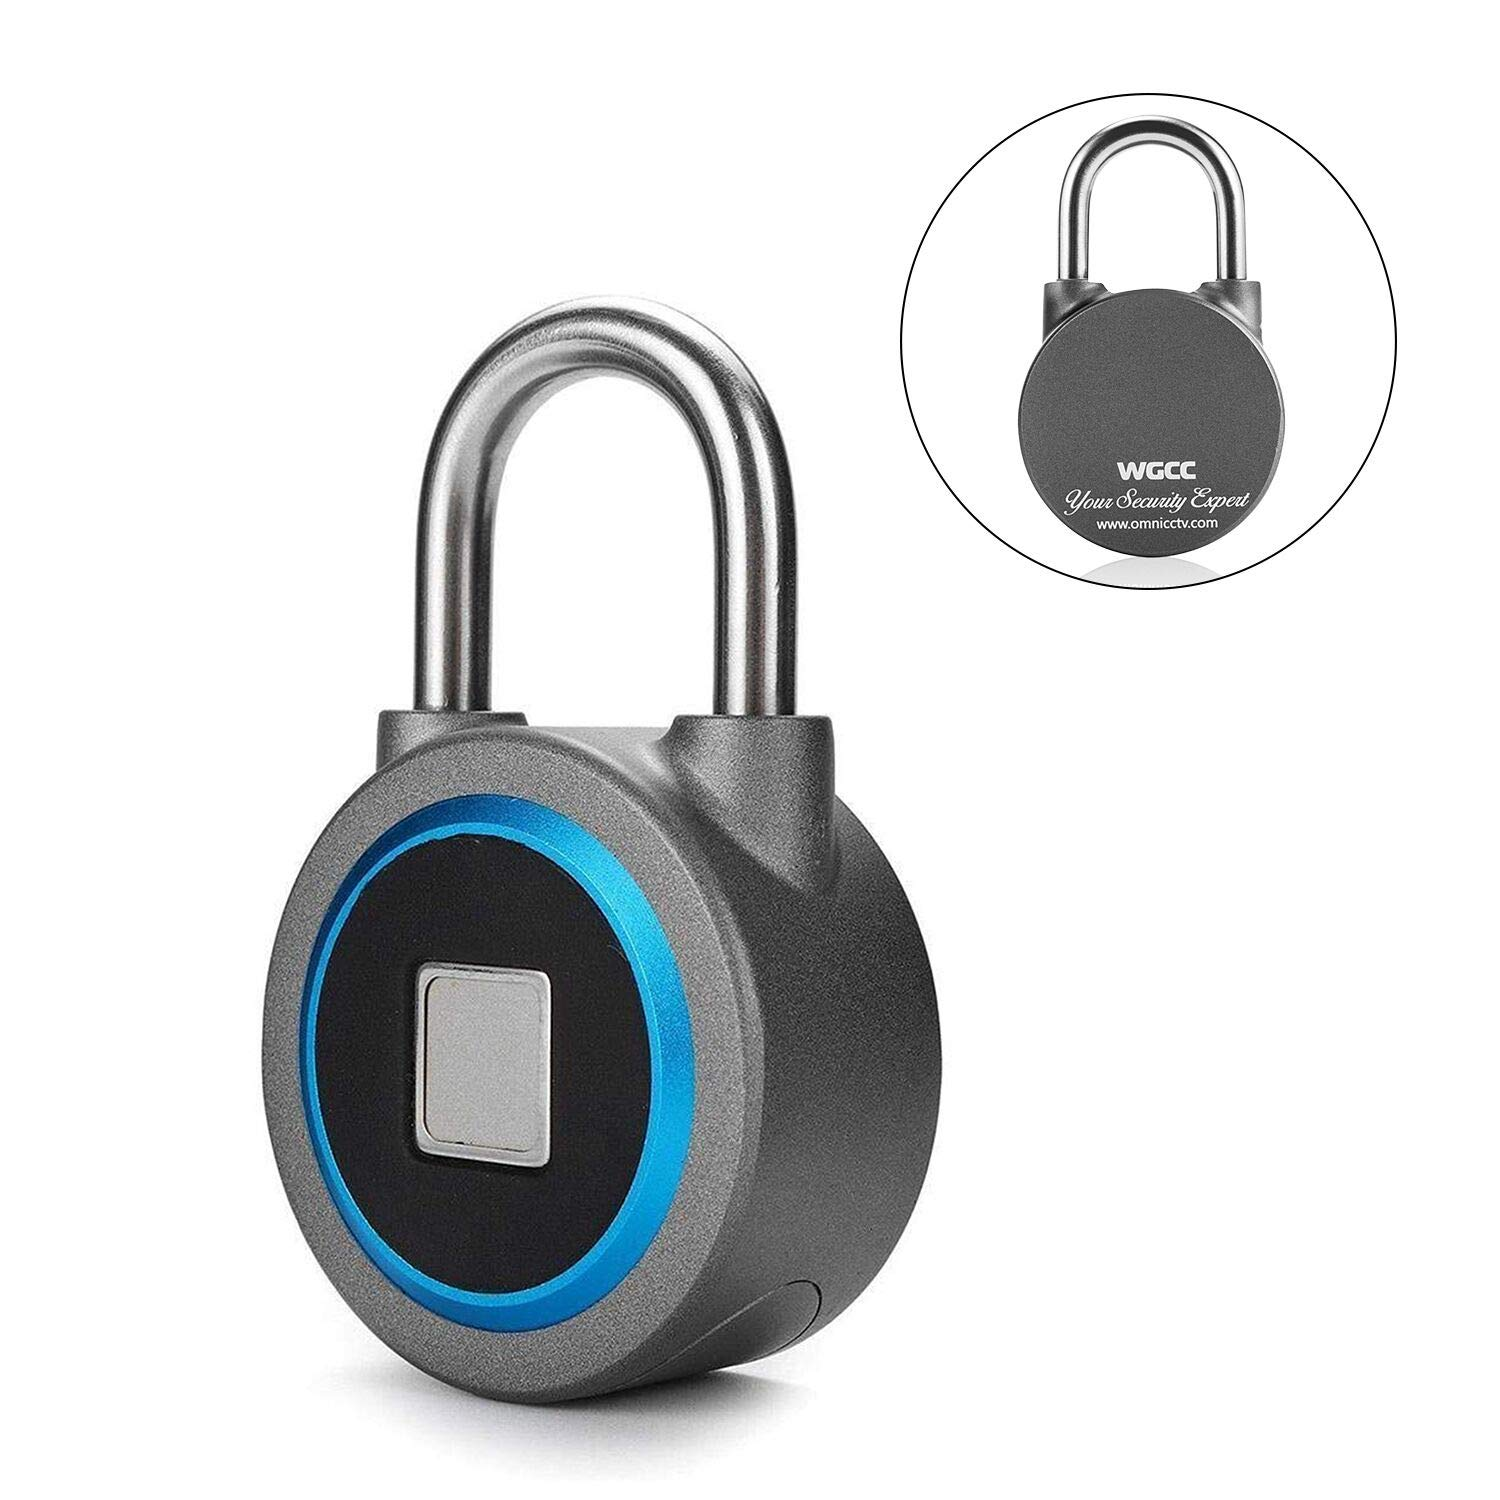 Fingerprint Padlock, Bluetooth Connection Metal Waterproof, Suitable for House Door, Suitcase, Backpack, Gym, Bike, Office, APP is Suitable for Android/IOS, Support USB charging (Blue)